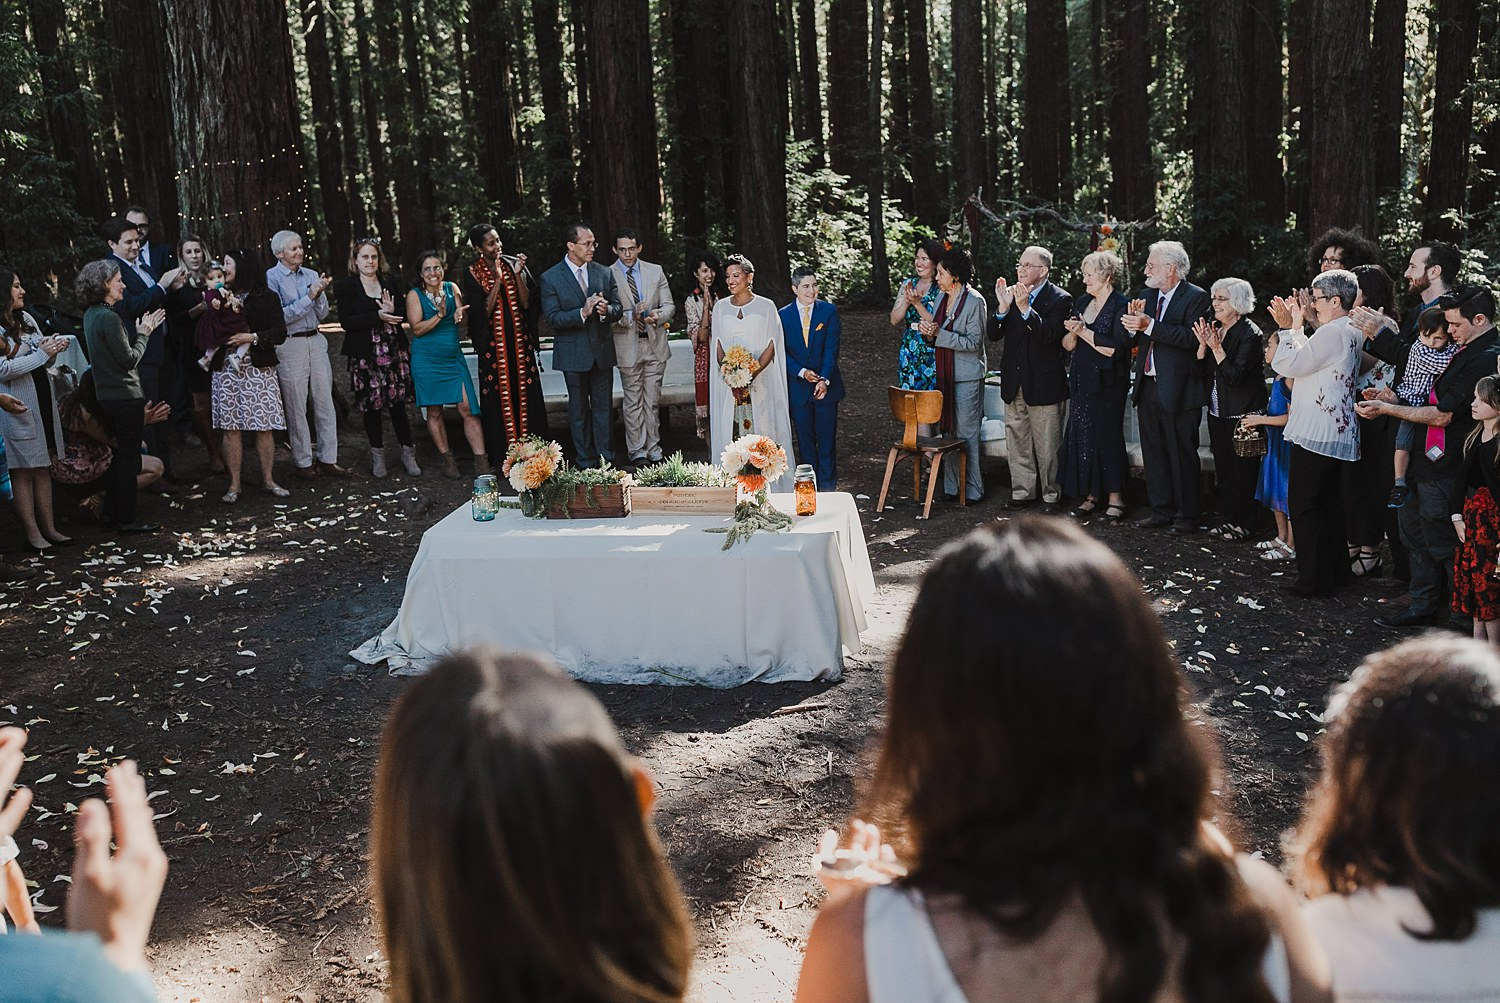 Wedding ceremony in Joaquin Miller Park, Oakland, CA.